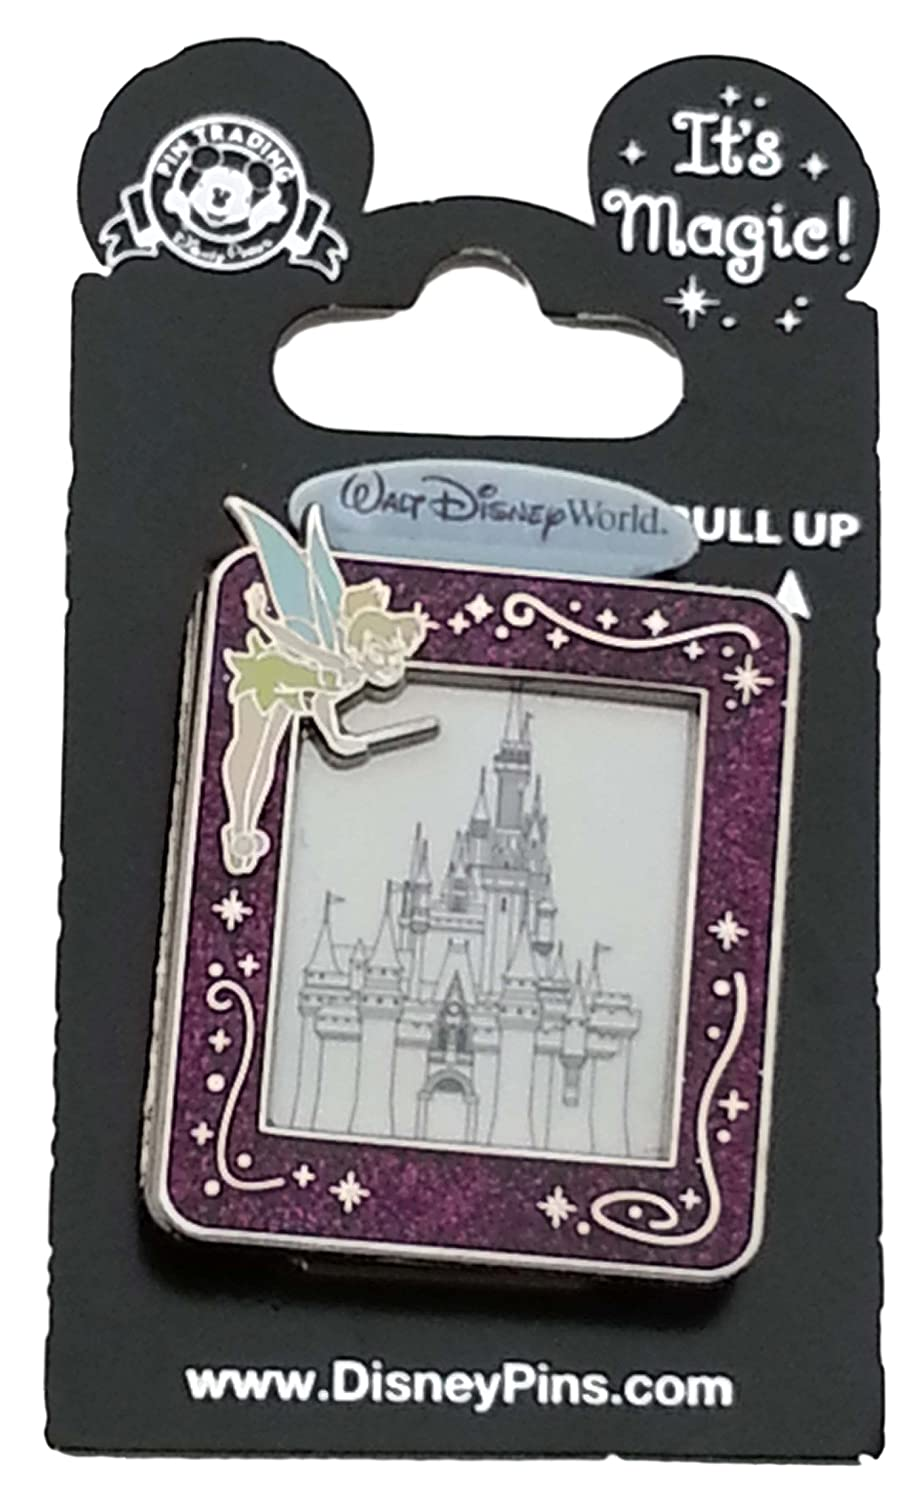 Disney Pin - It's Magic with Tinker Bell and Cinderella's Castle